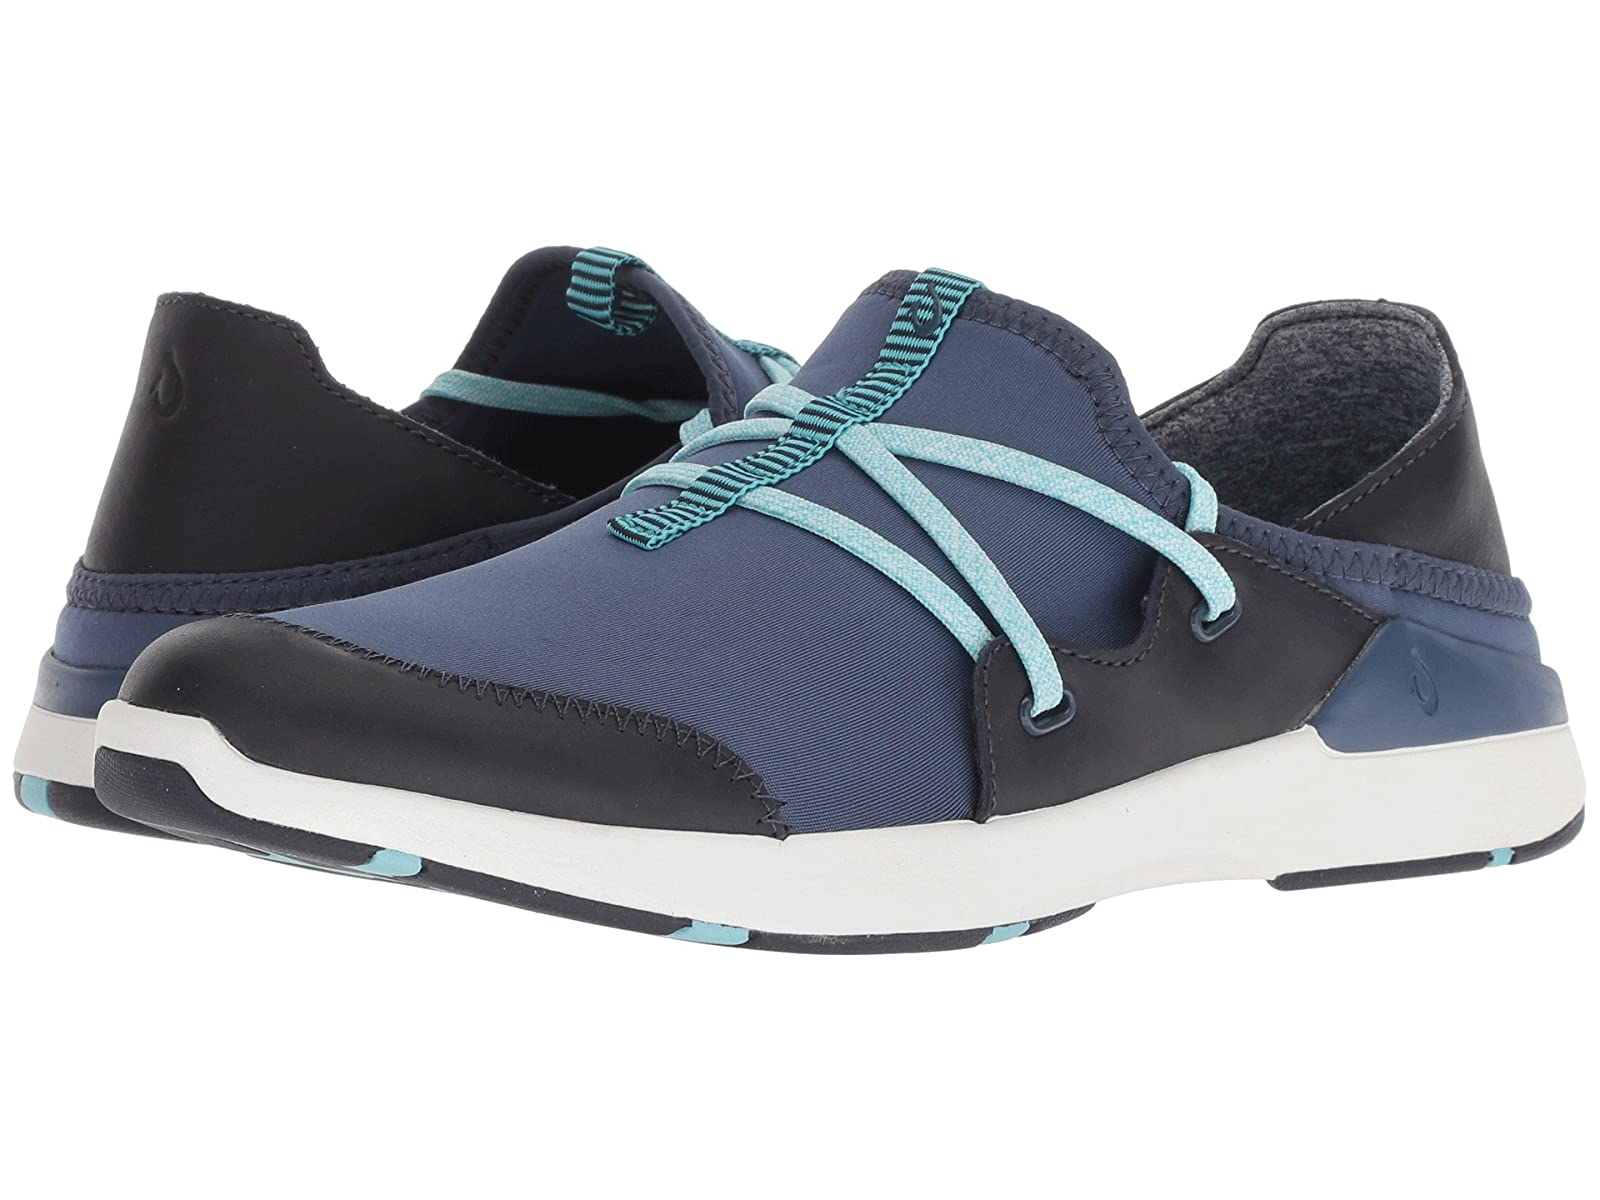 OluKai Miki LiAtmospheric grades have affordable shoes